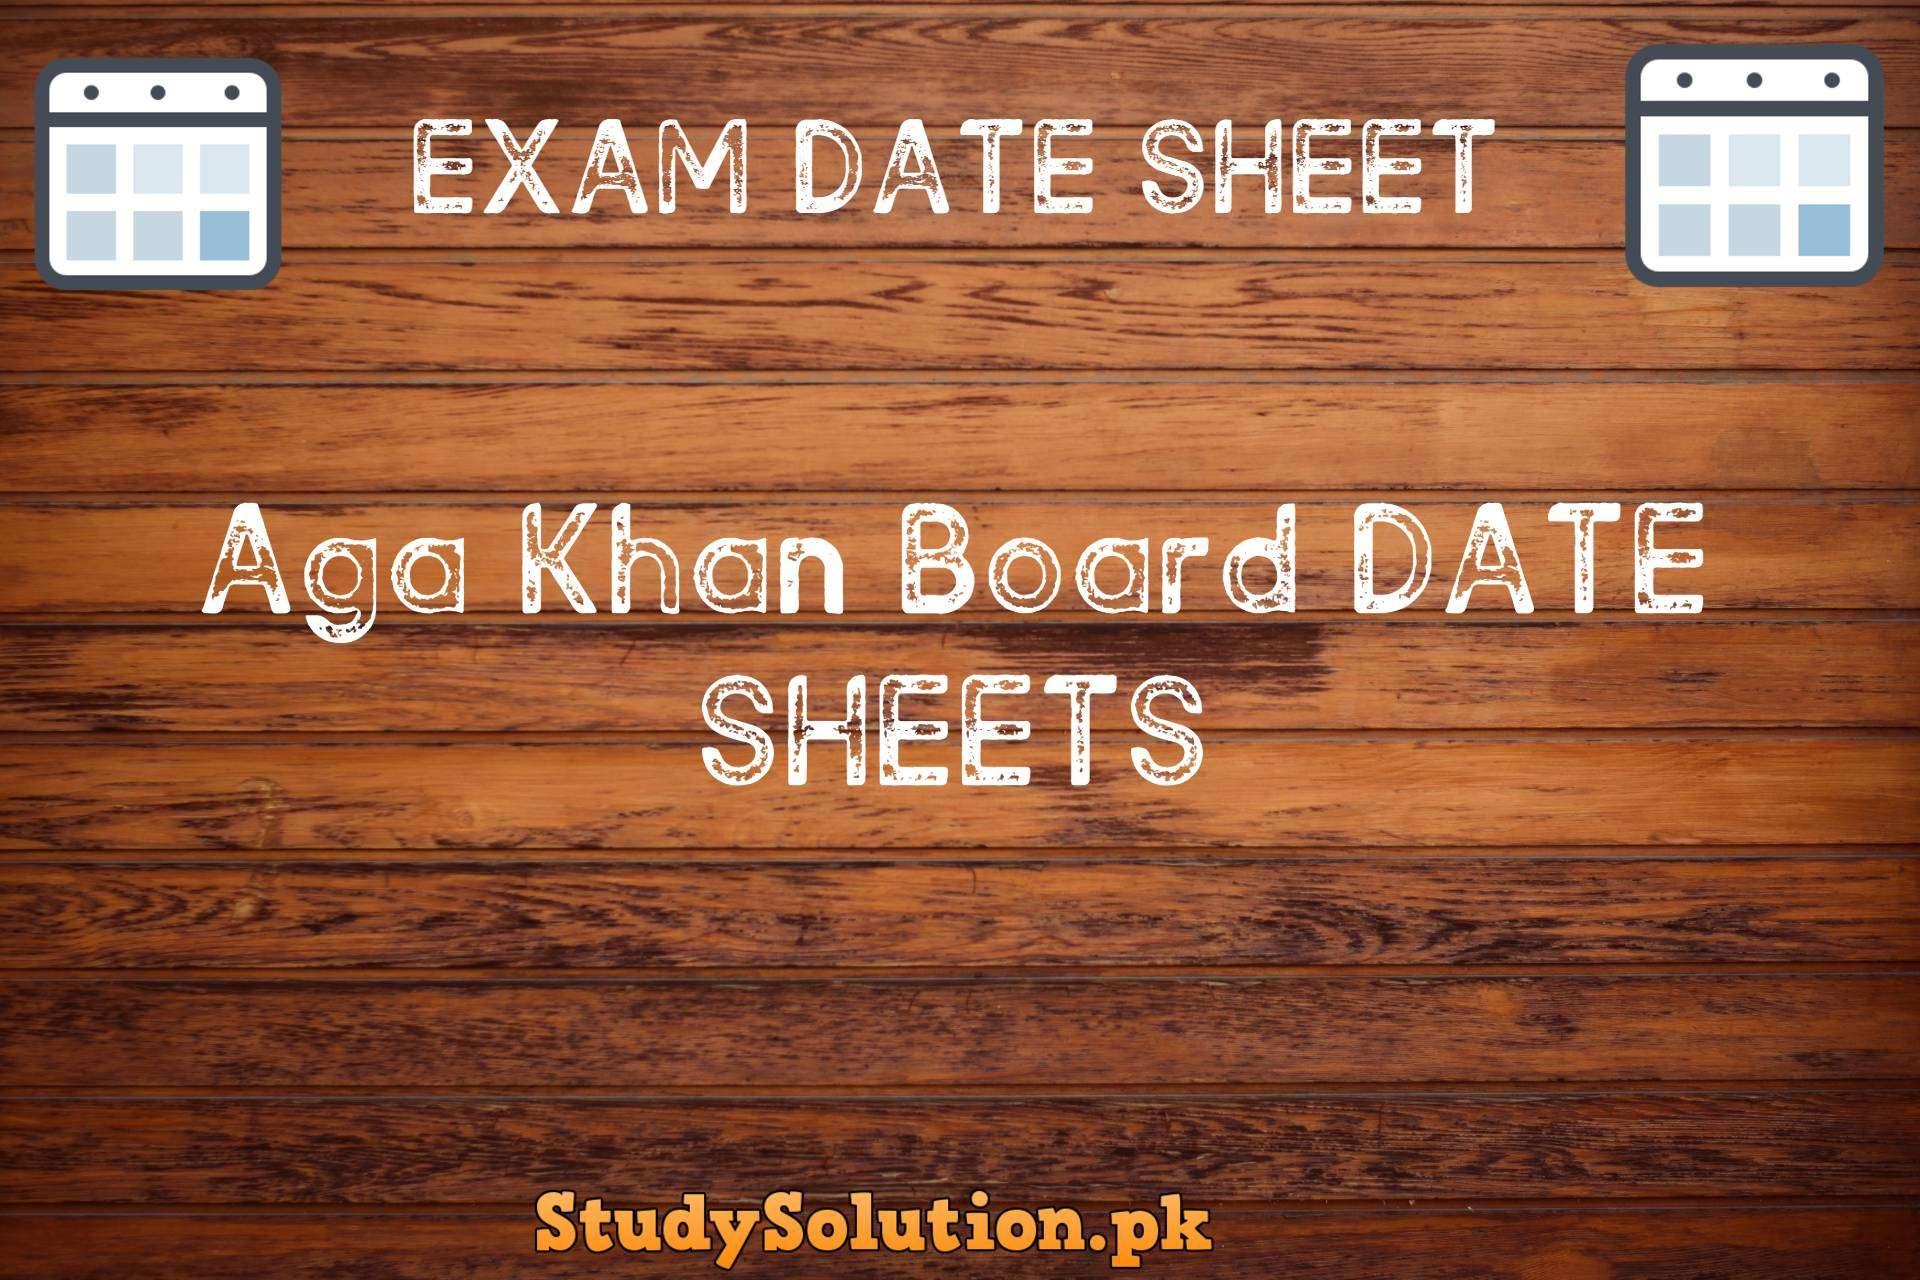 Aga Khan Board Date Sheets